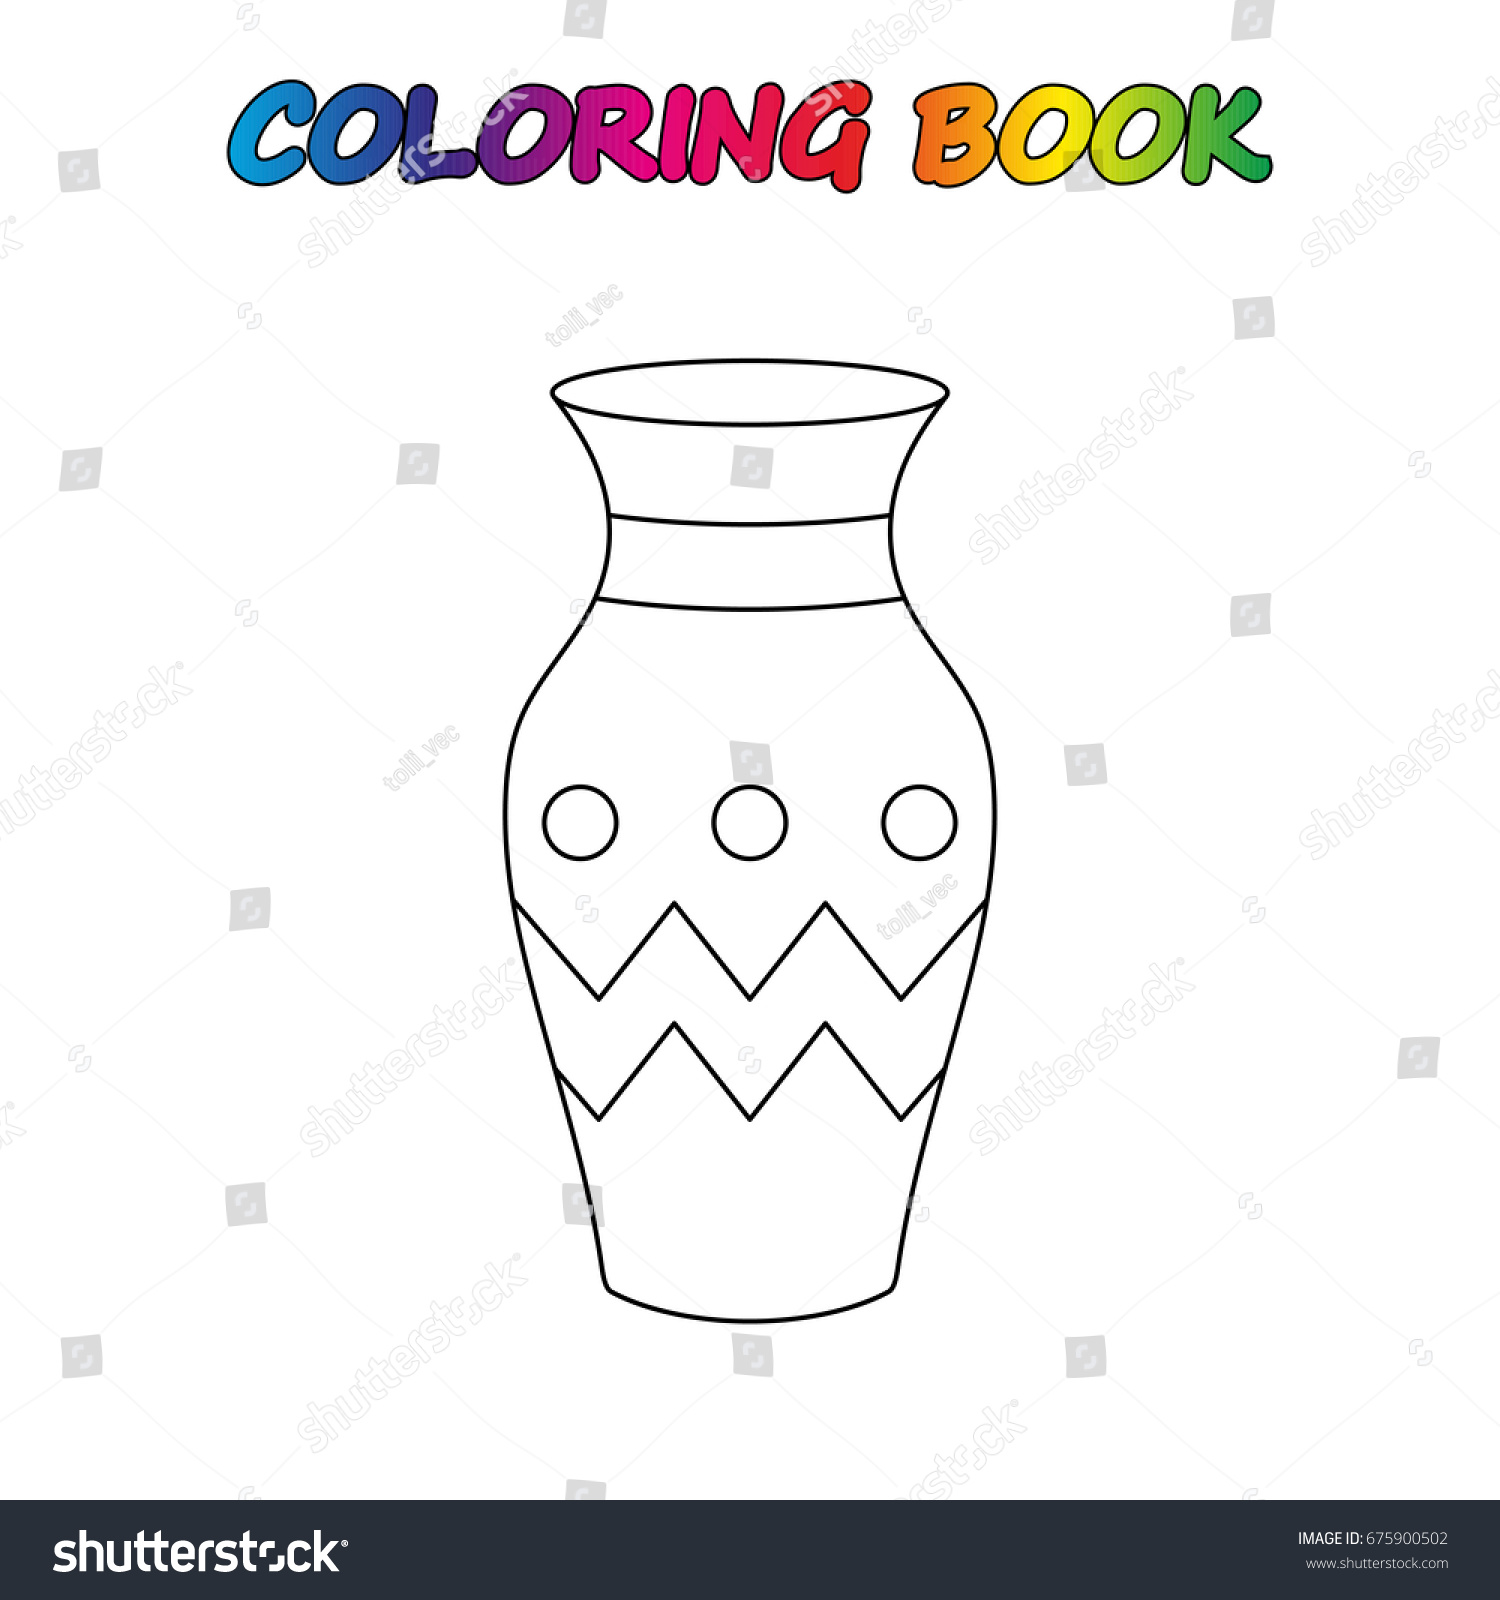 Vase Coloring Book Game Kids Vector Stock 675900502